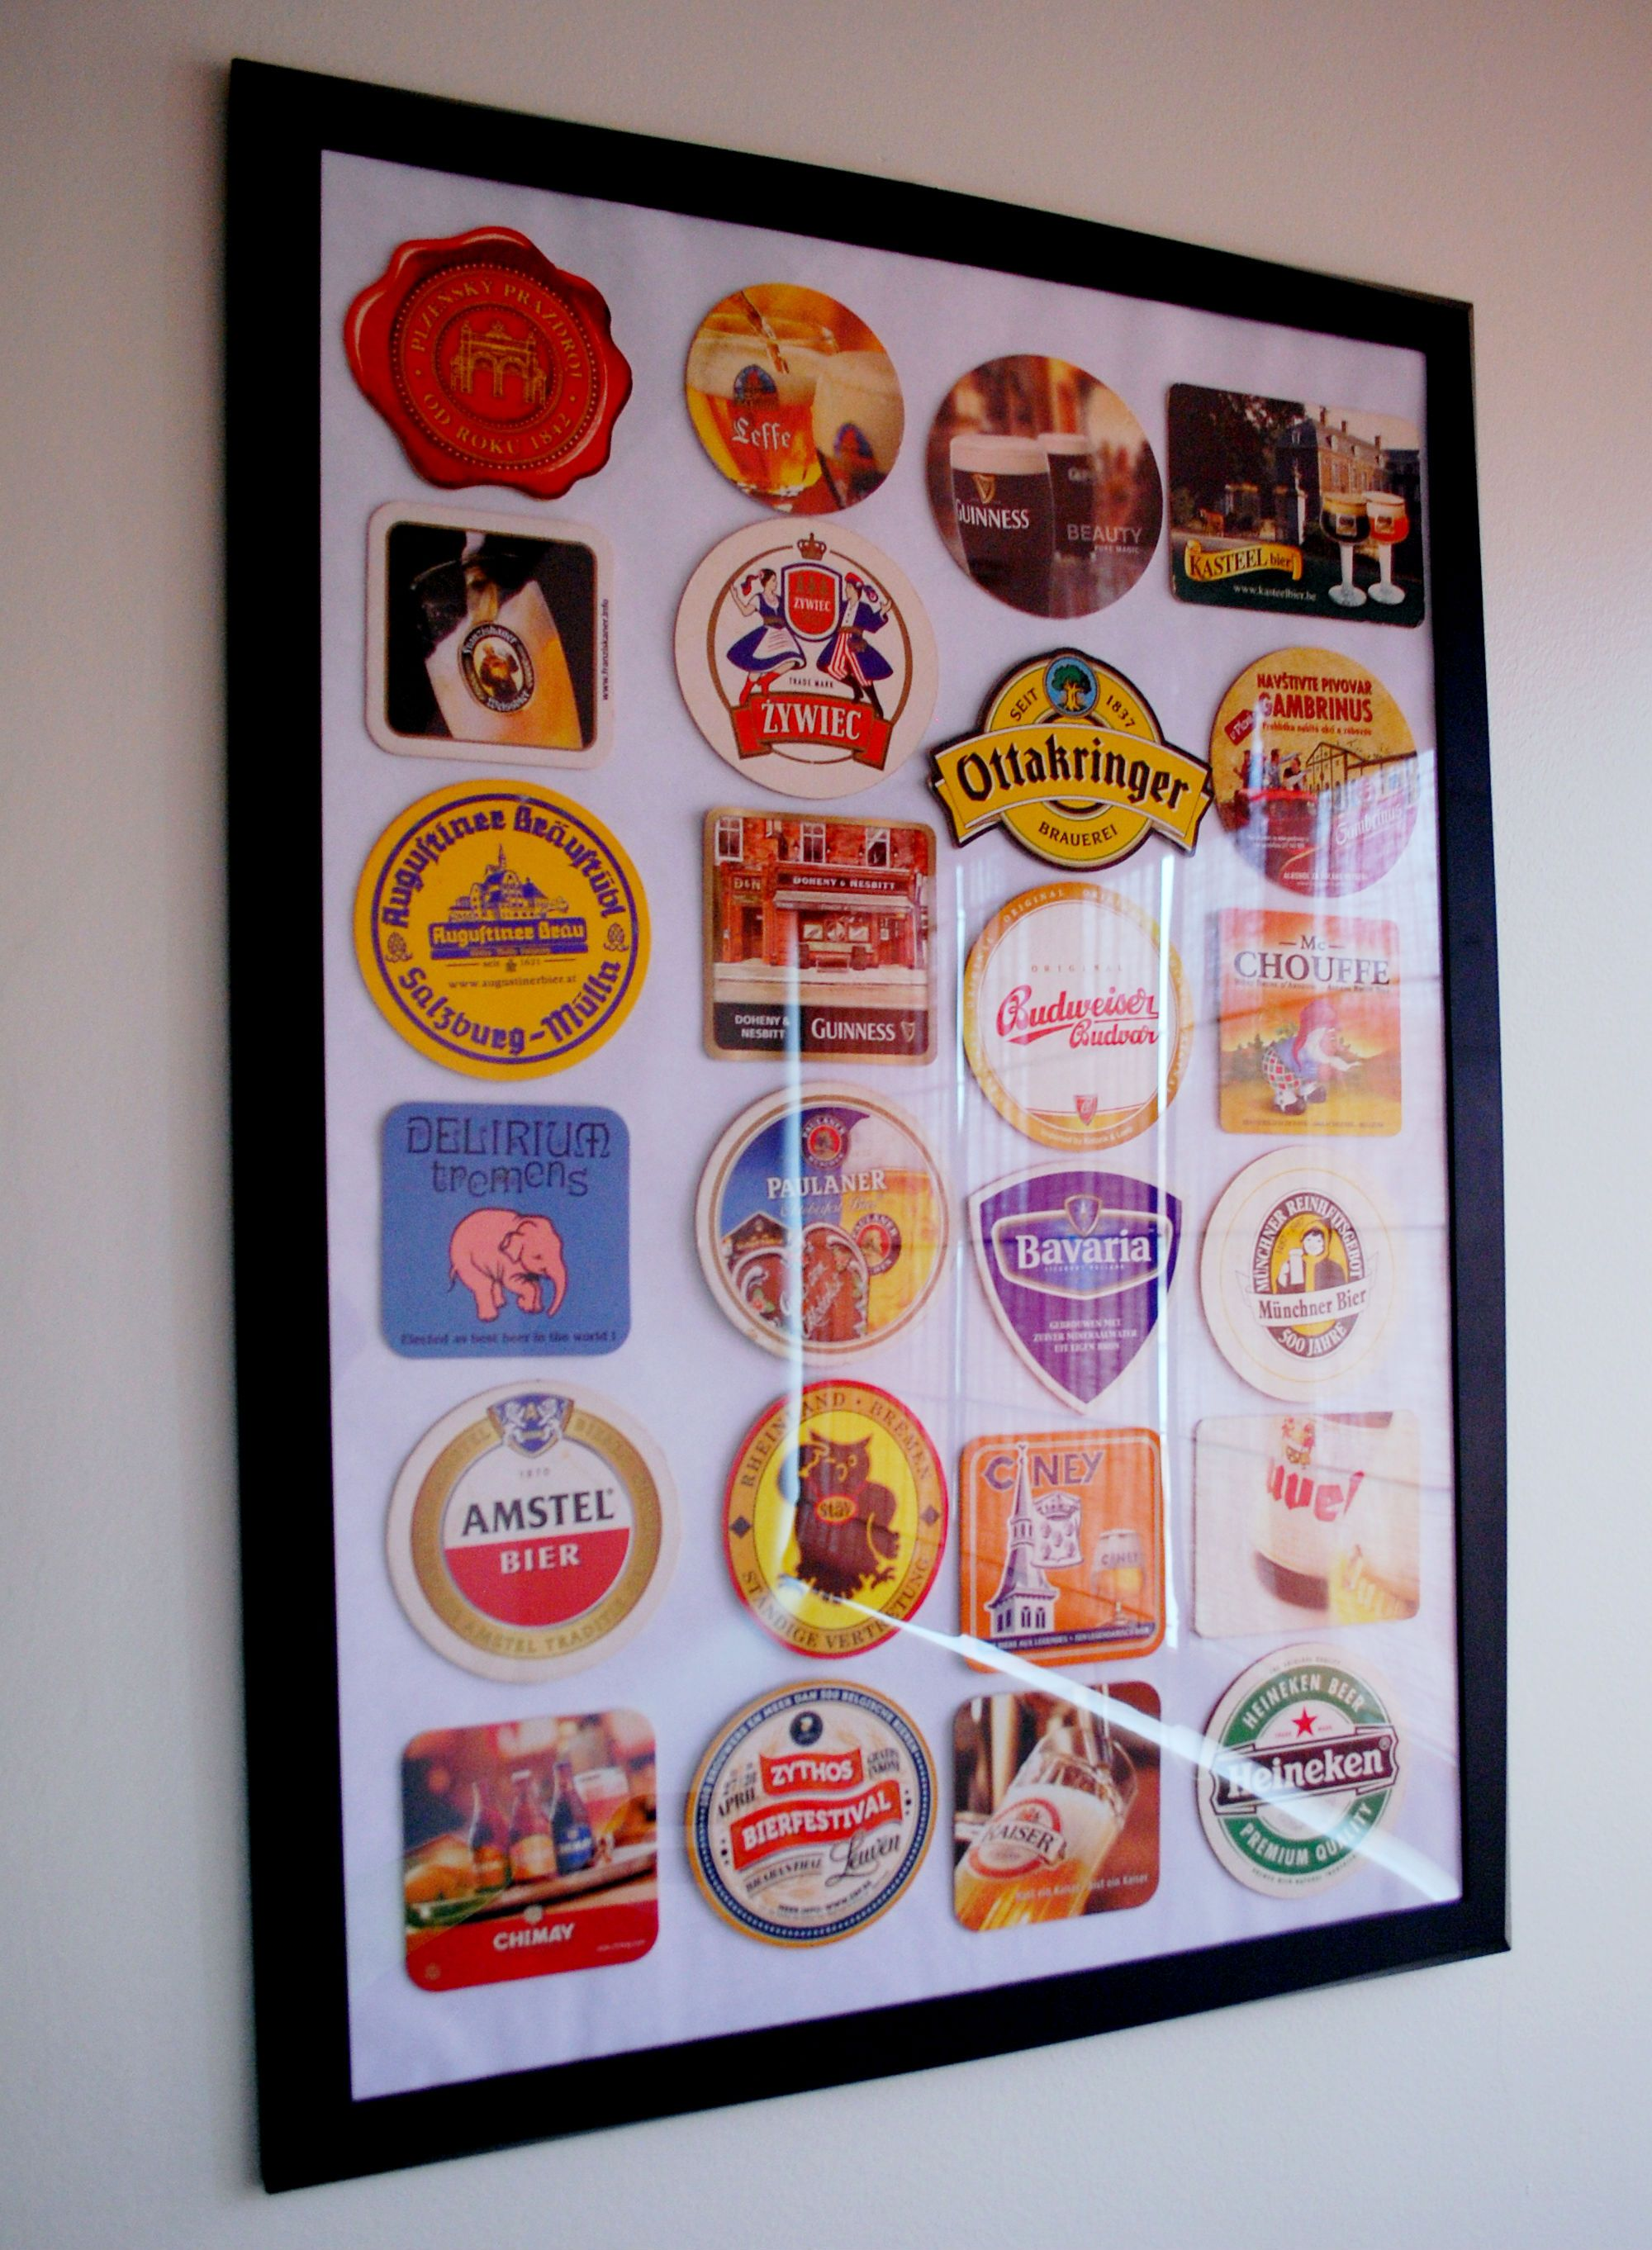 Beer Coasters From All Over Europe Framed In The Wall With